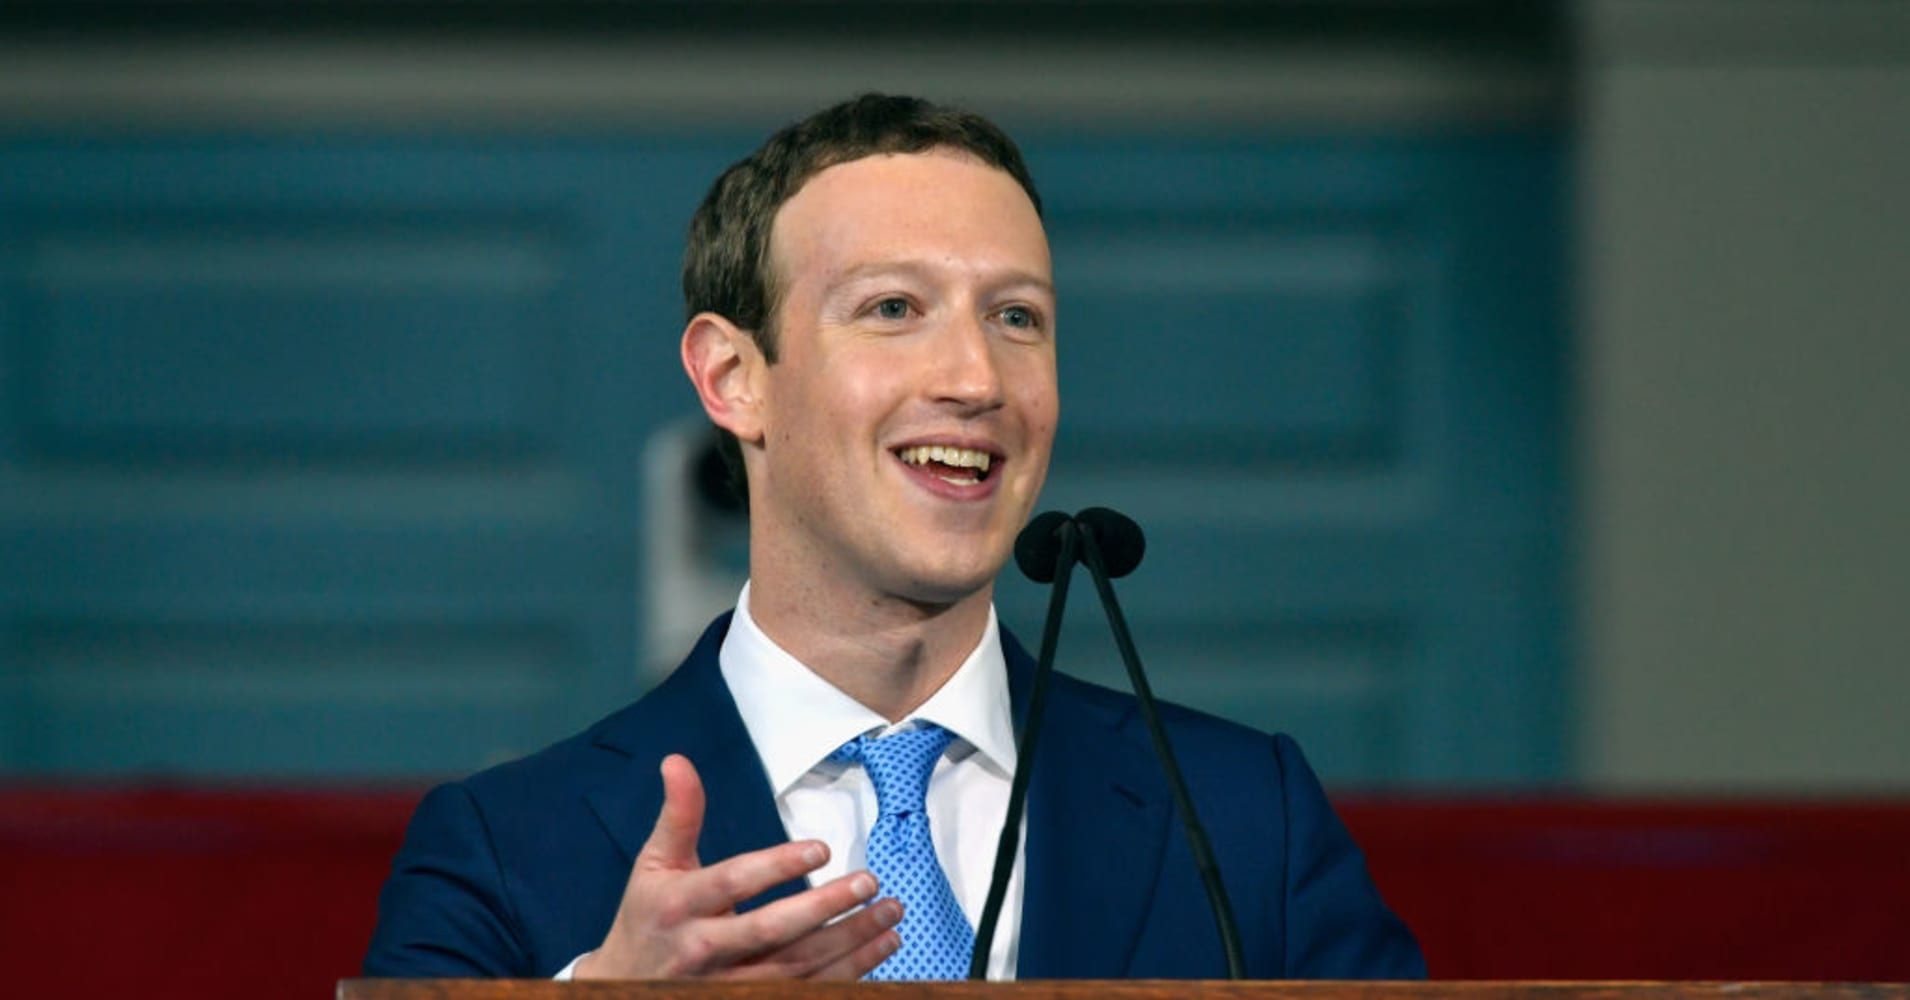 Mark Zuckerberg Calls For Universal Basic Income